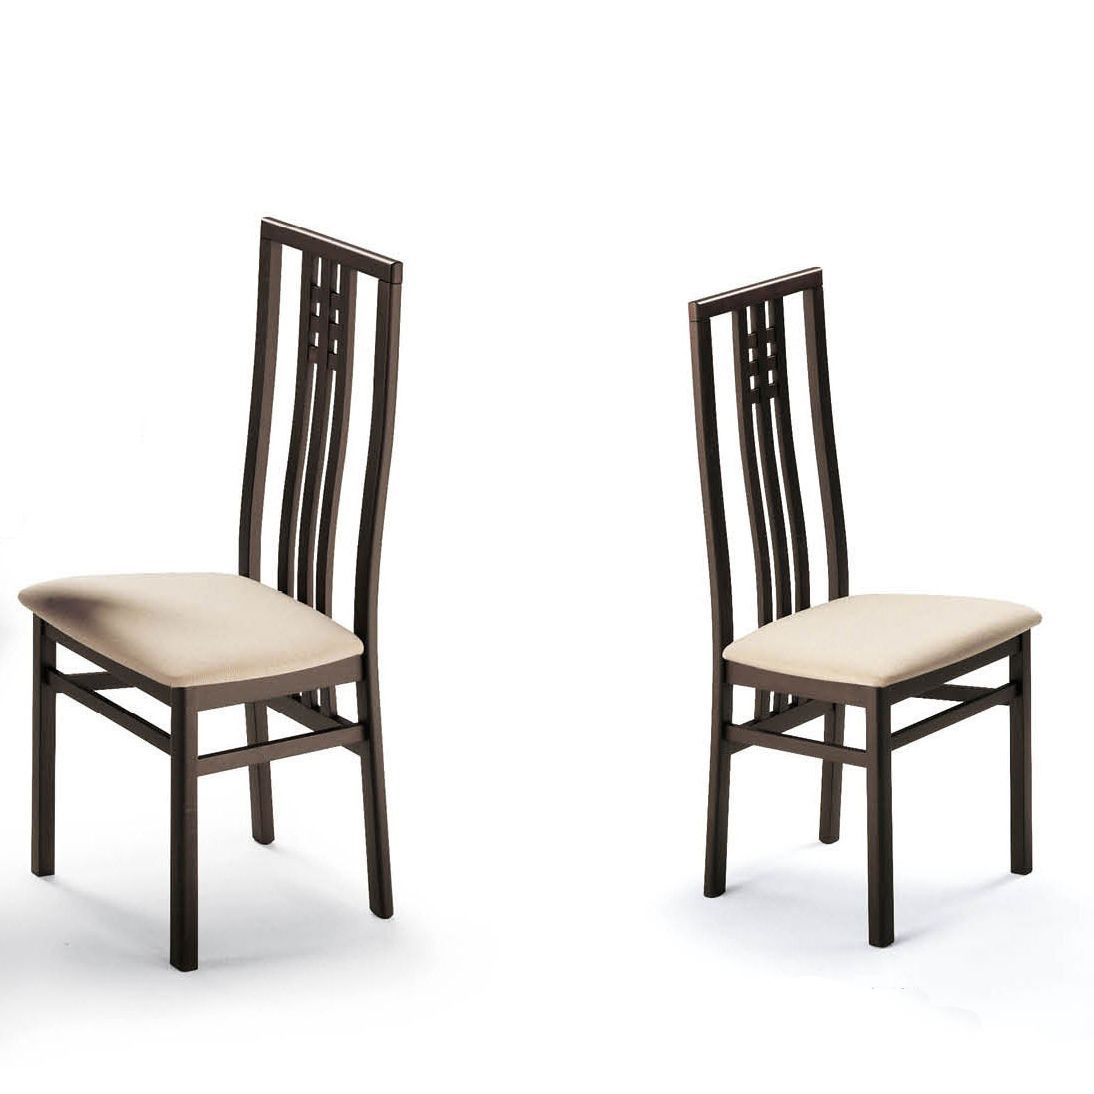 Luca home cappuccino dining chairs set of luca home dining